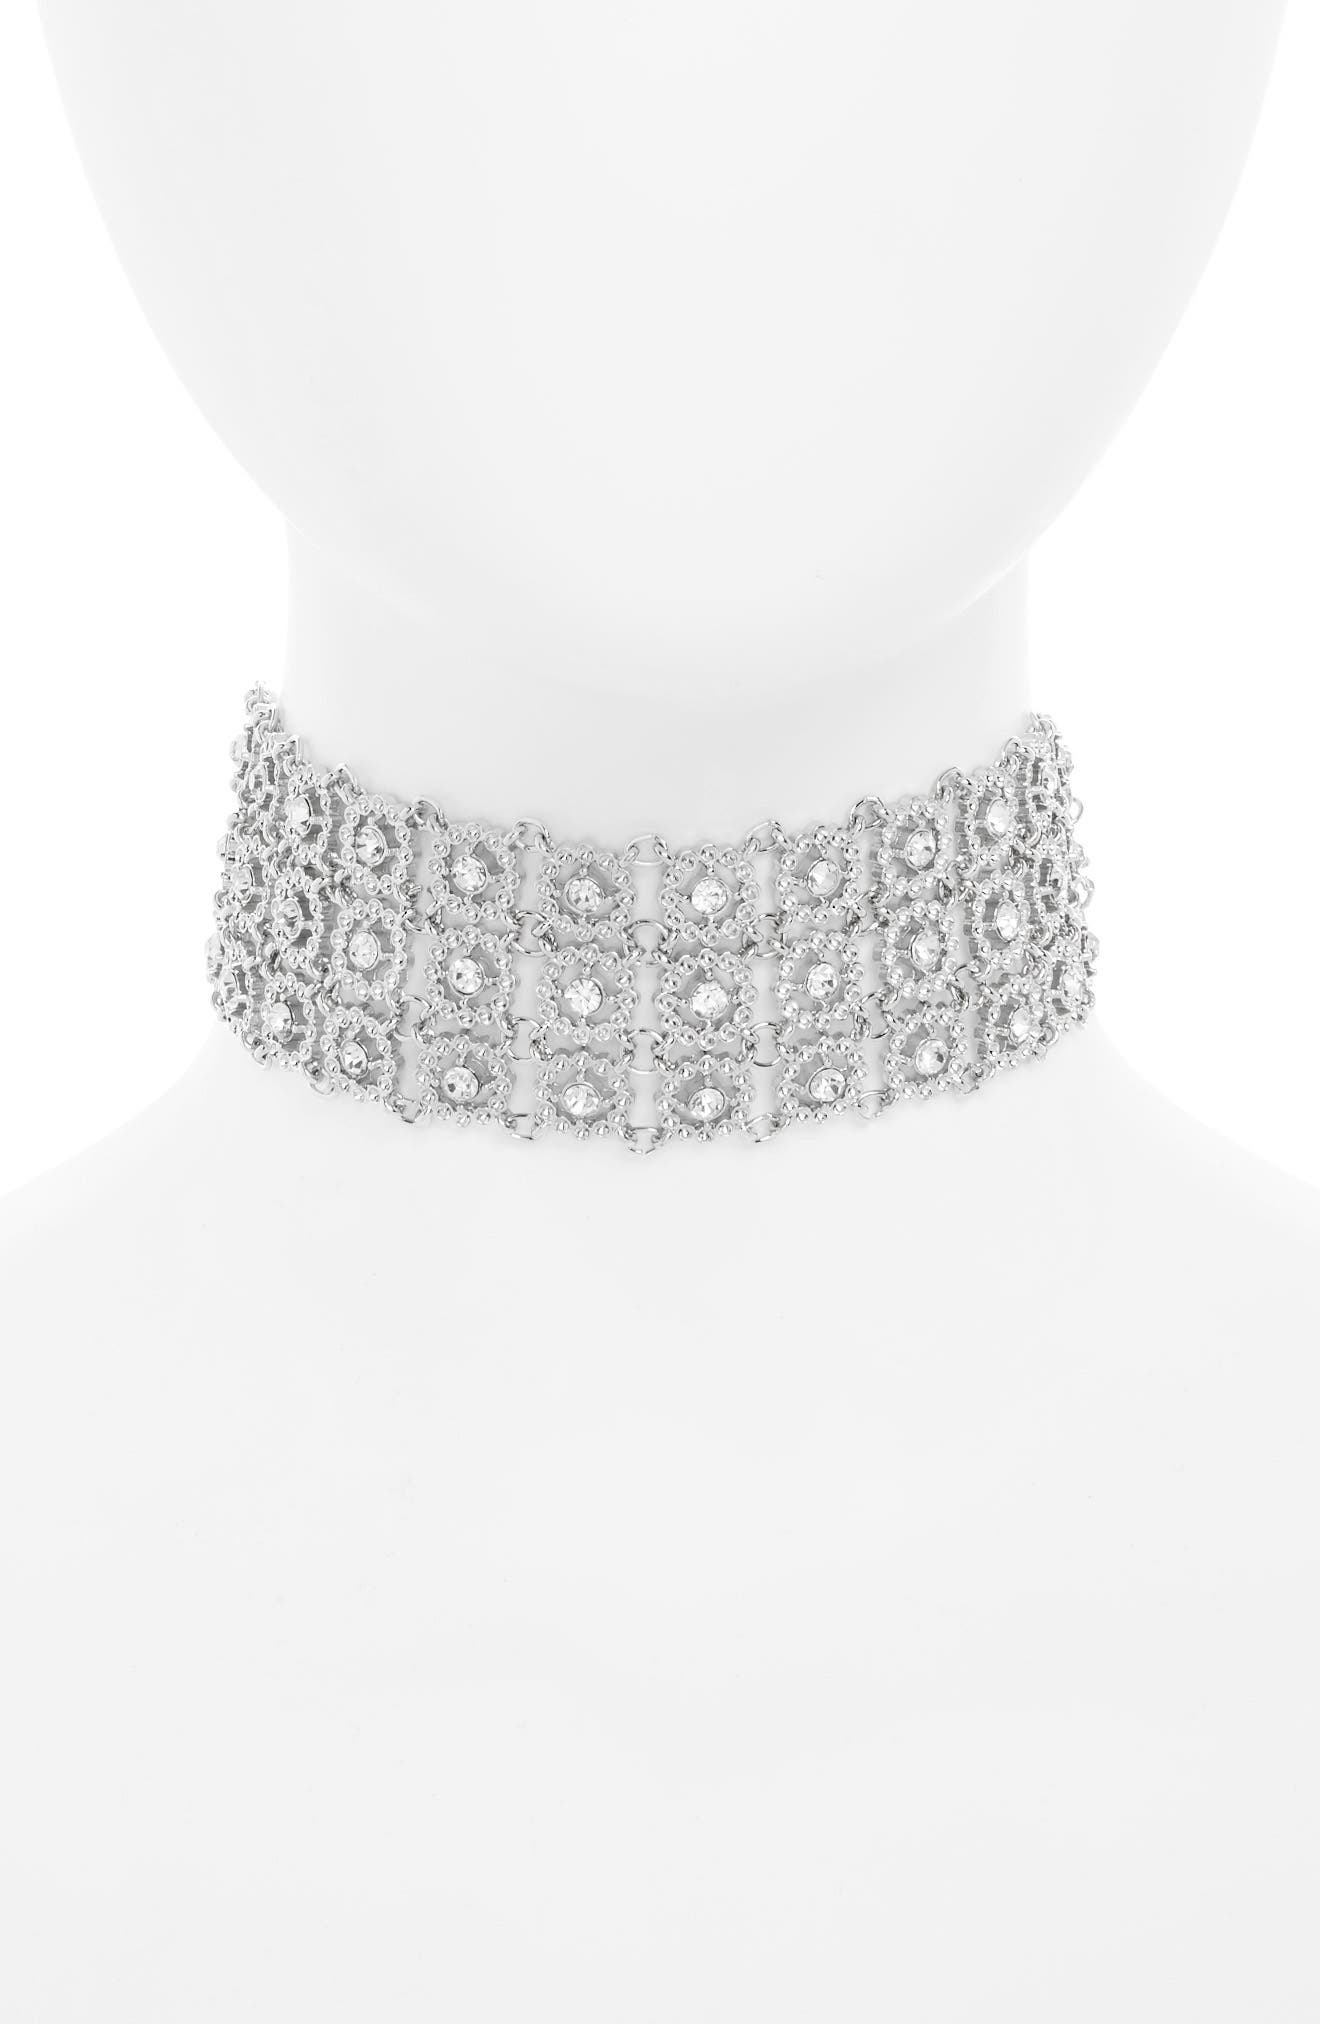 Crystal Flower Choker Necklace,                             Main thumbnail 1, color,                             Silver